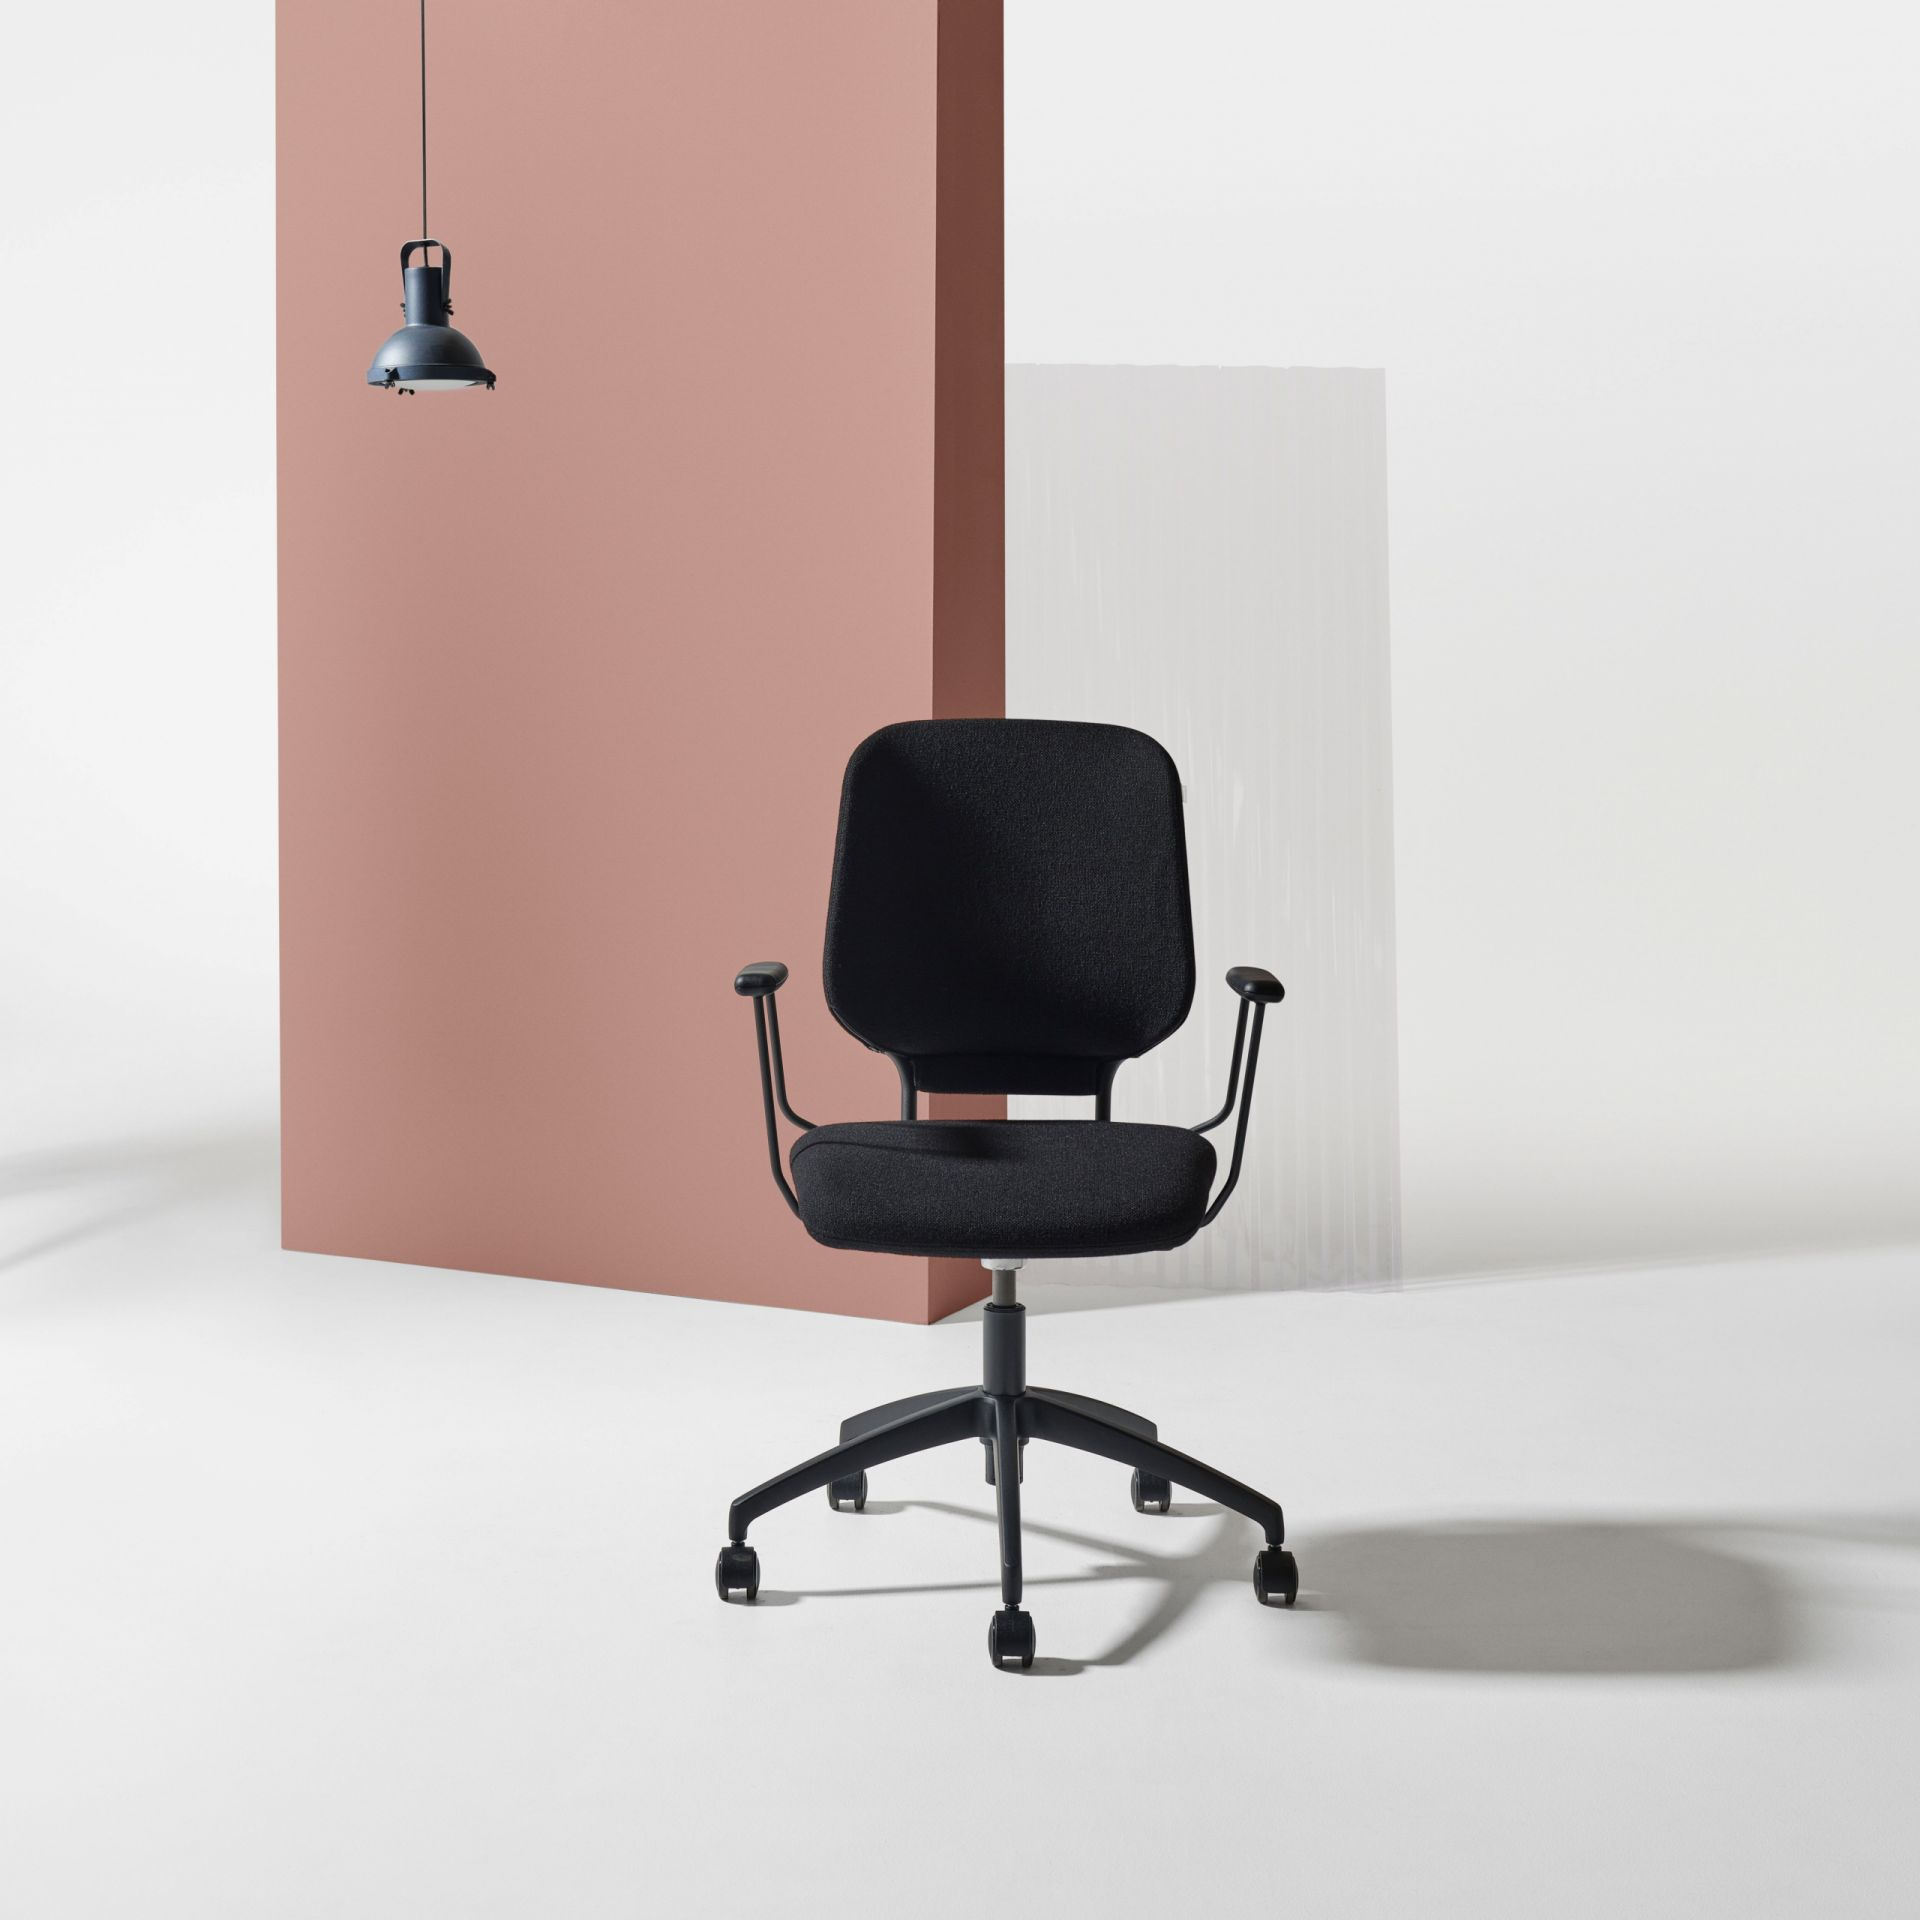 Savo Invite Invite meeting chair product image 1